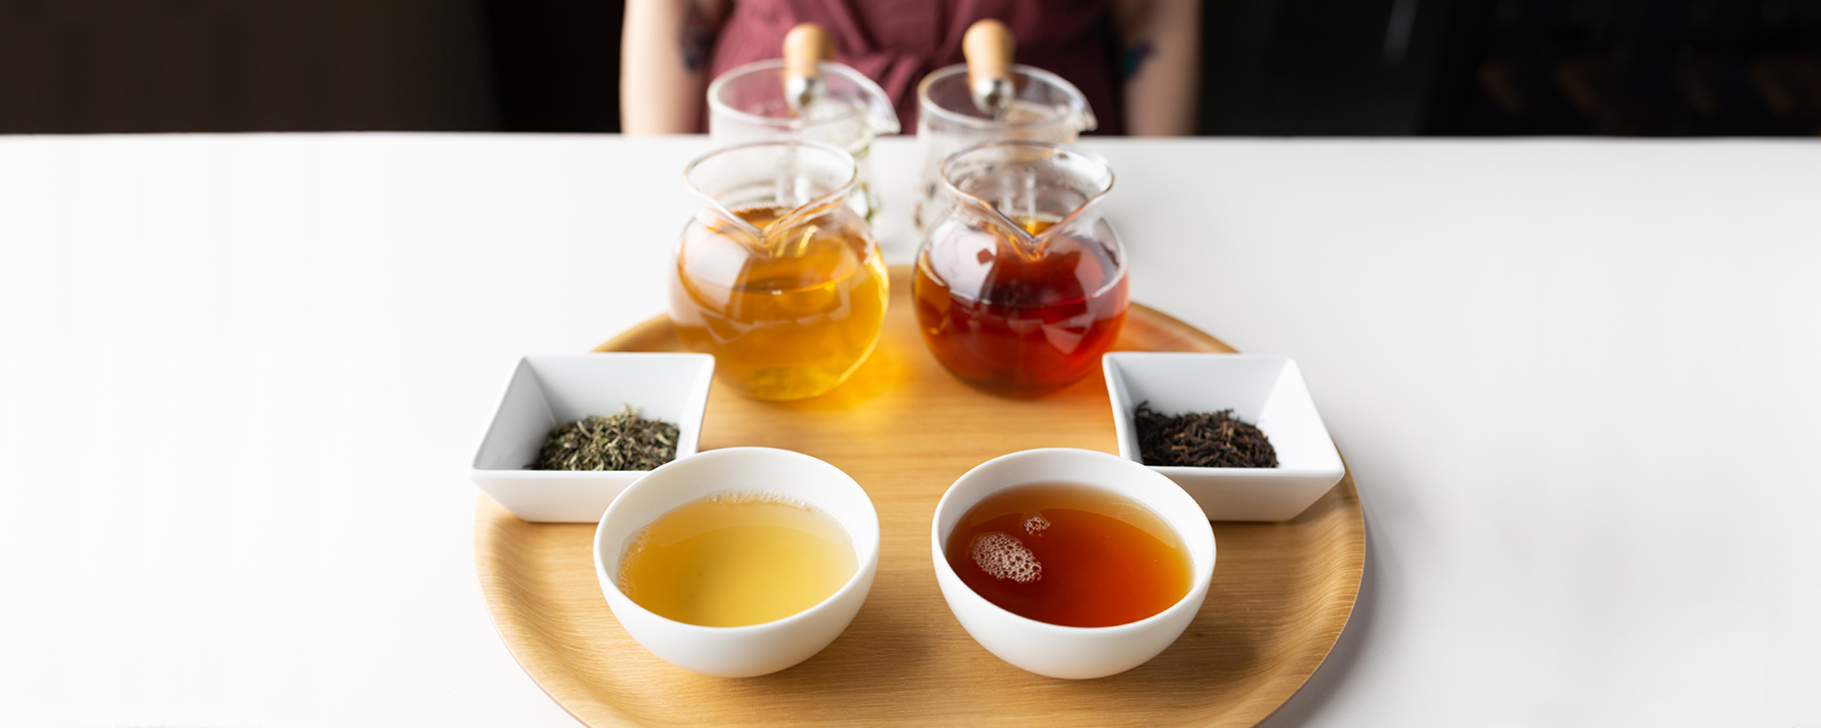 Tasting to Compare: Darjeeling 1st & 2nd Flush Teas